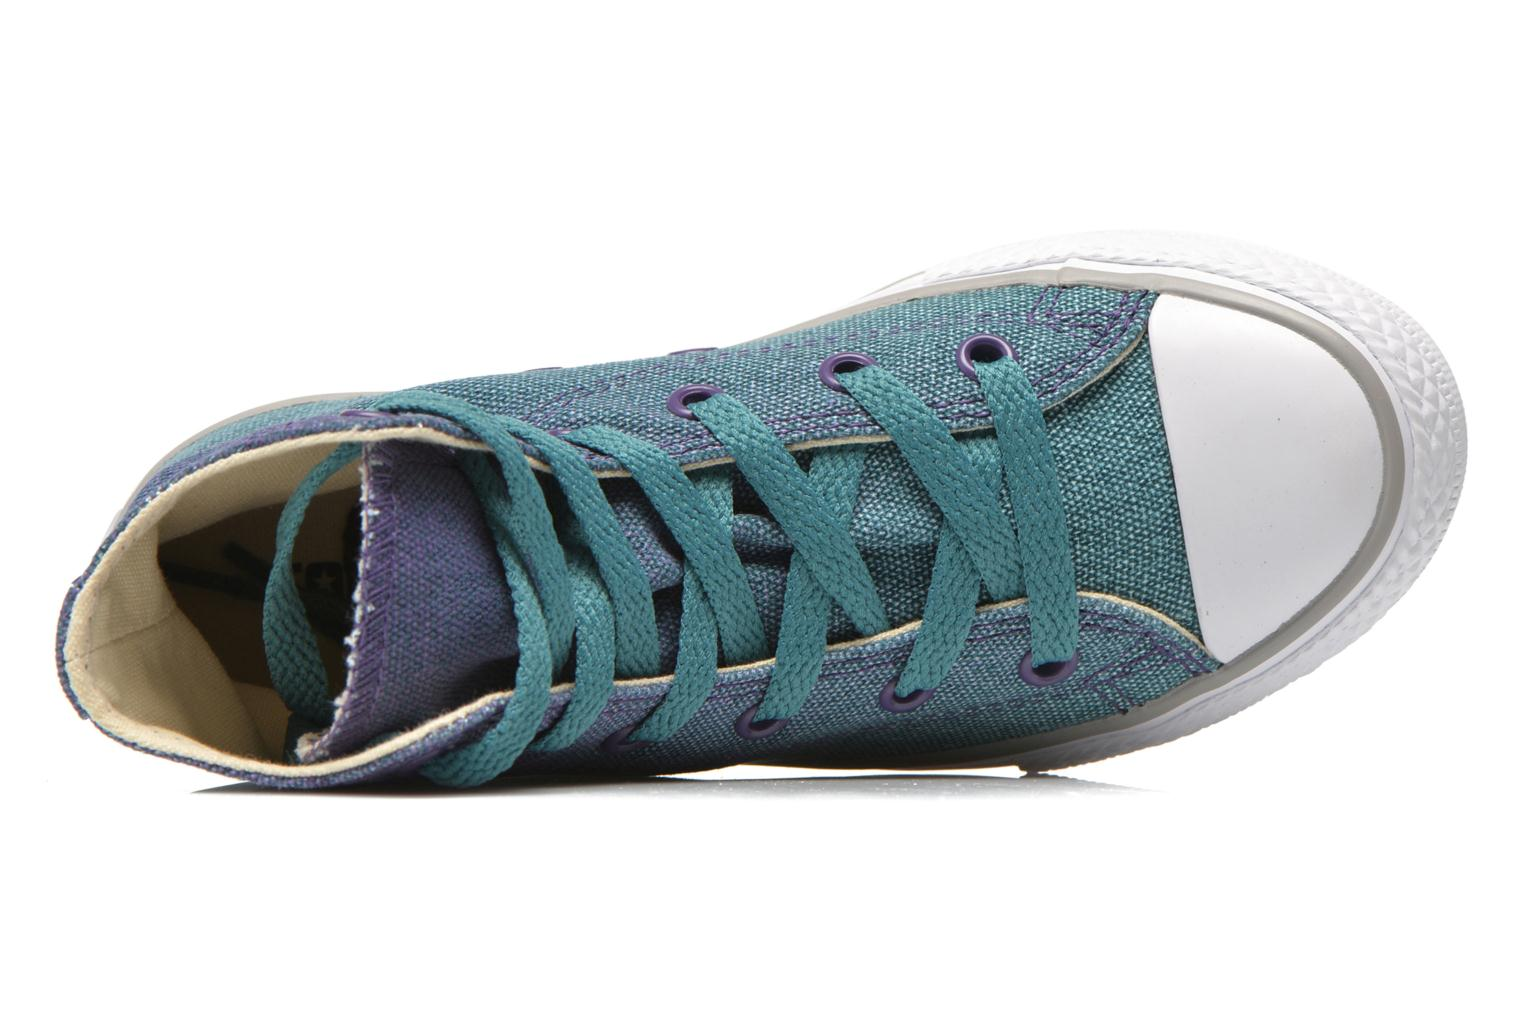 Chuck Taylor All Star Hi Seaside Blue/Showtime Purple